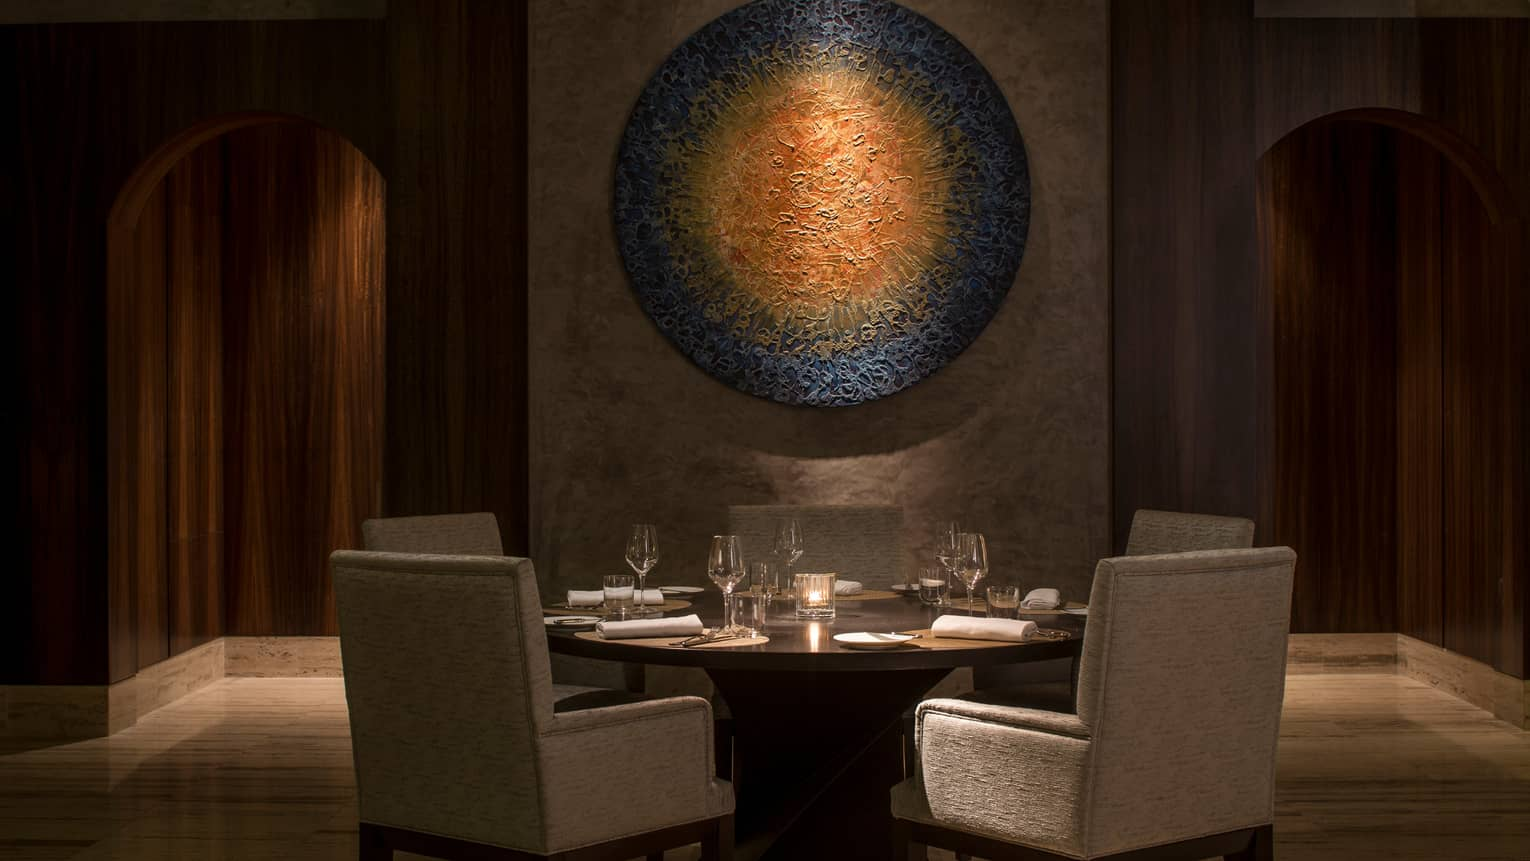 The Creek restaurant dining table, chairs under modern round art sculpture in dimly-lit room